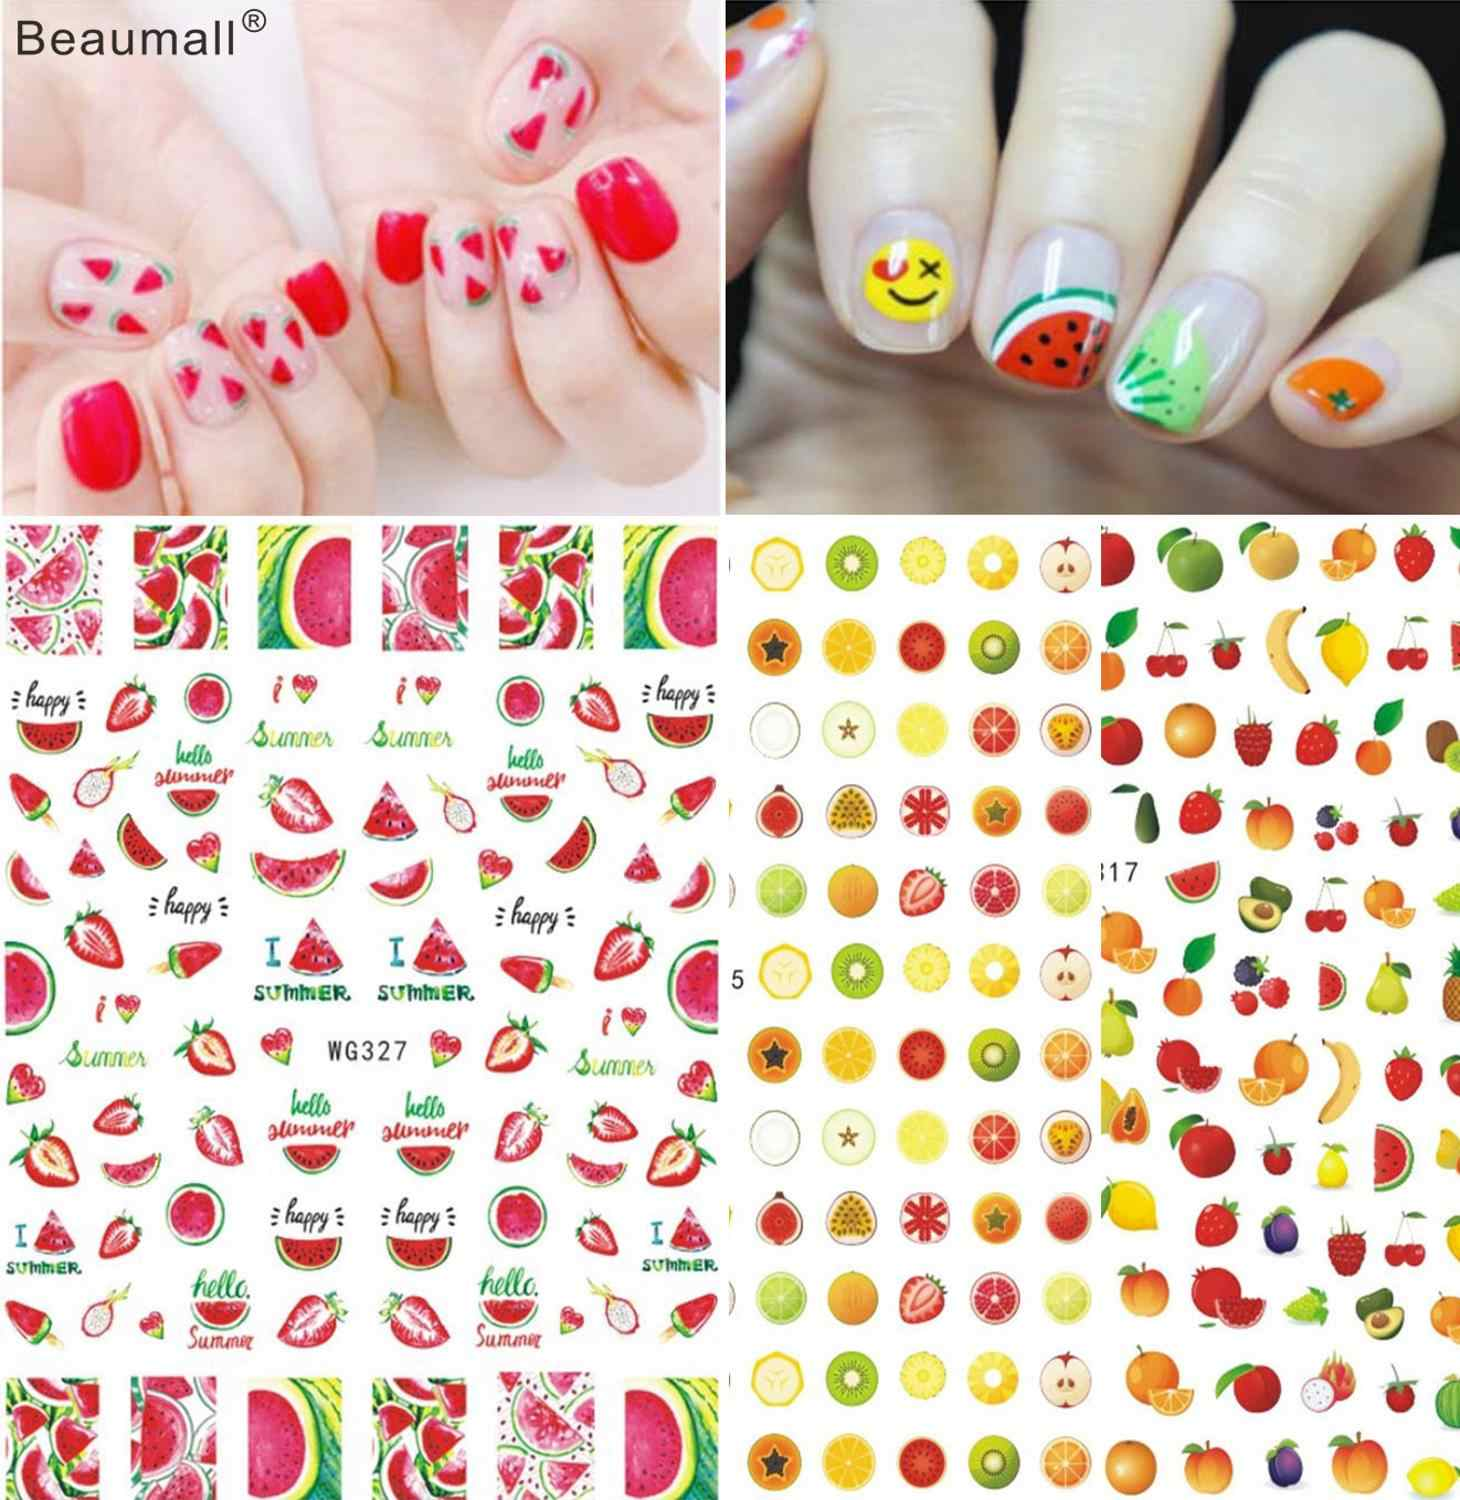 Vruchten Nails Art Manicure Terug Lijm Decal Decoraties Ontwerp Nail Sticker Voor Nagels Tips Beauty